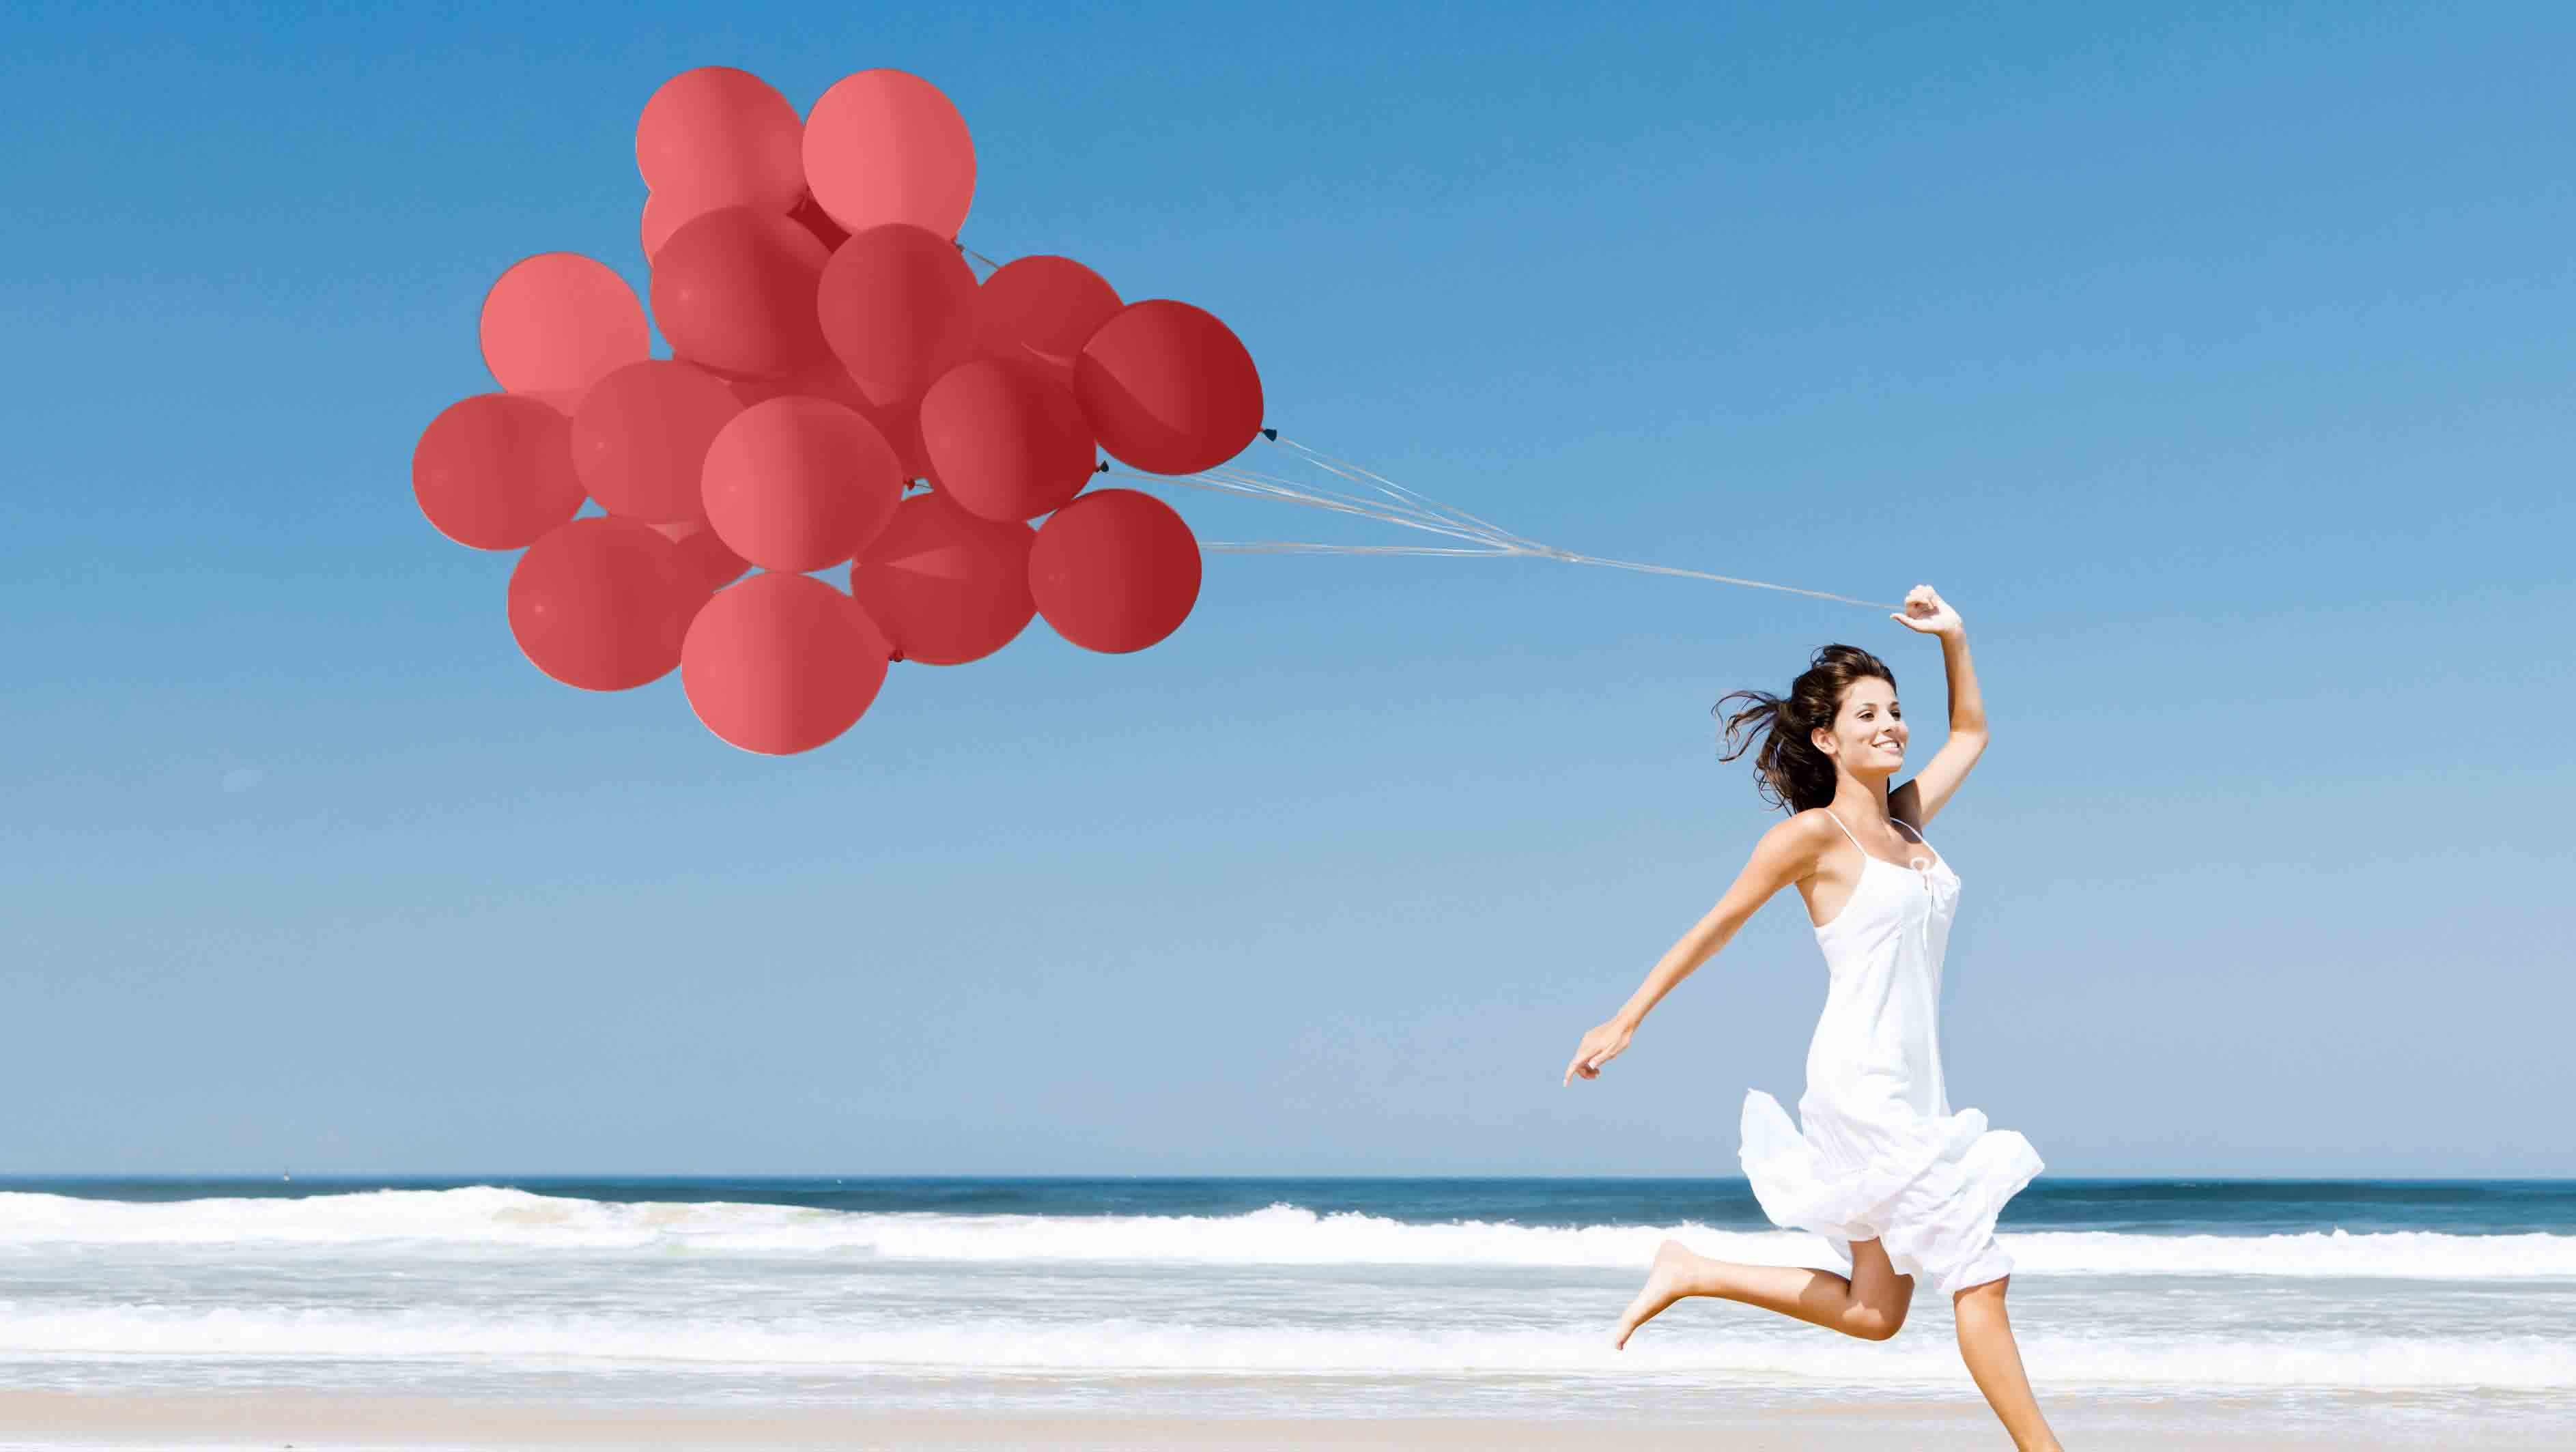 Woman runs down the beach holding red balloons